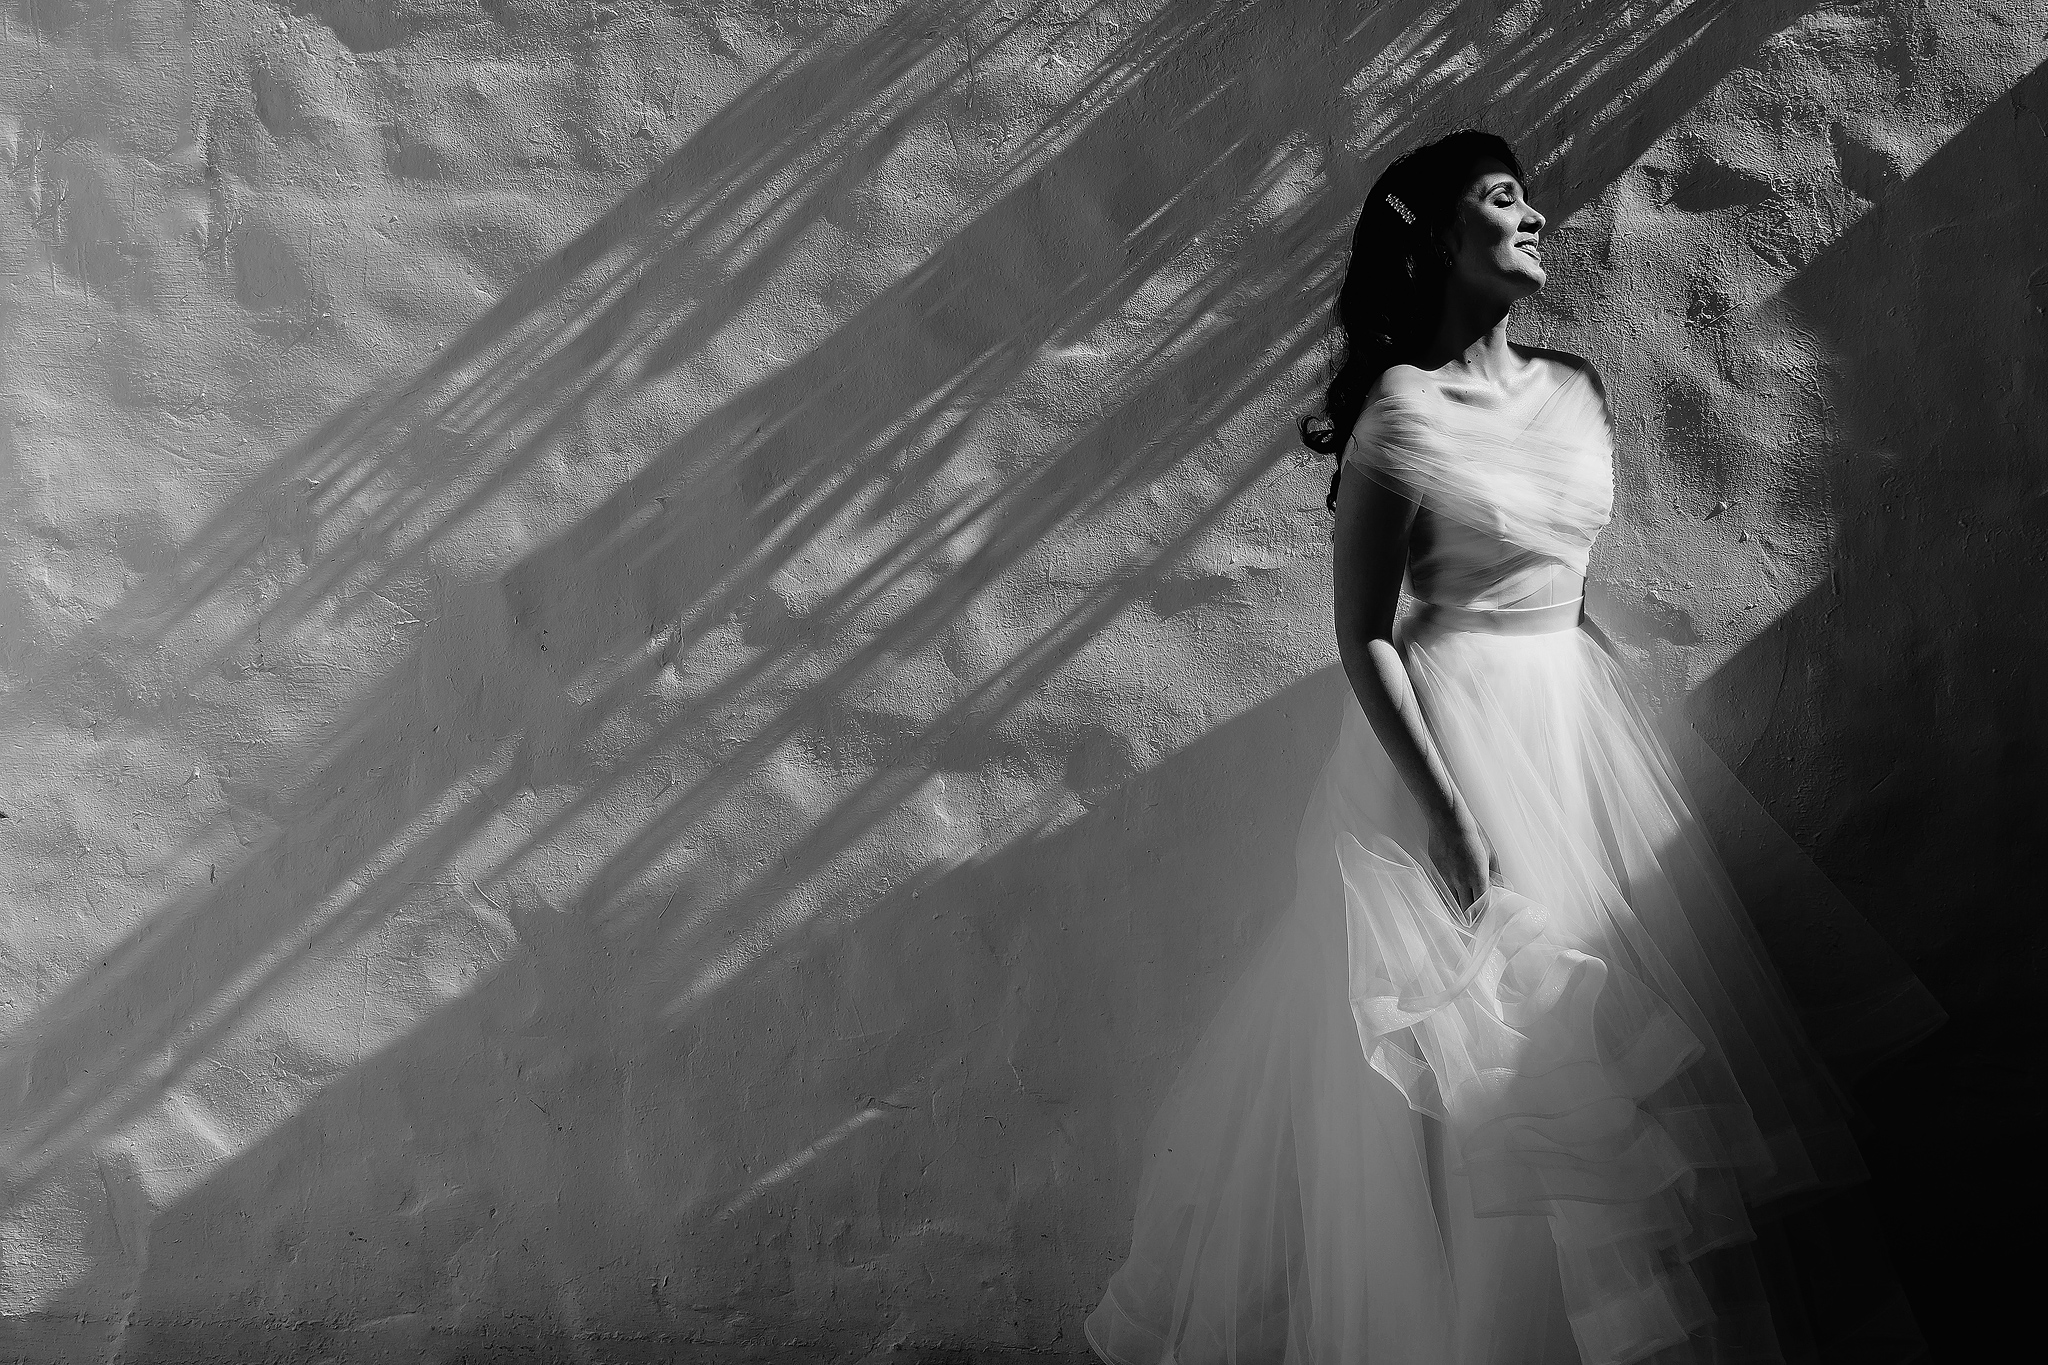 Bride in chiffon gown against wall with shadows - photo by Ruan Redelinghuys Photography